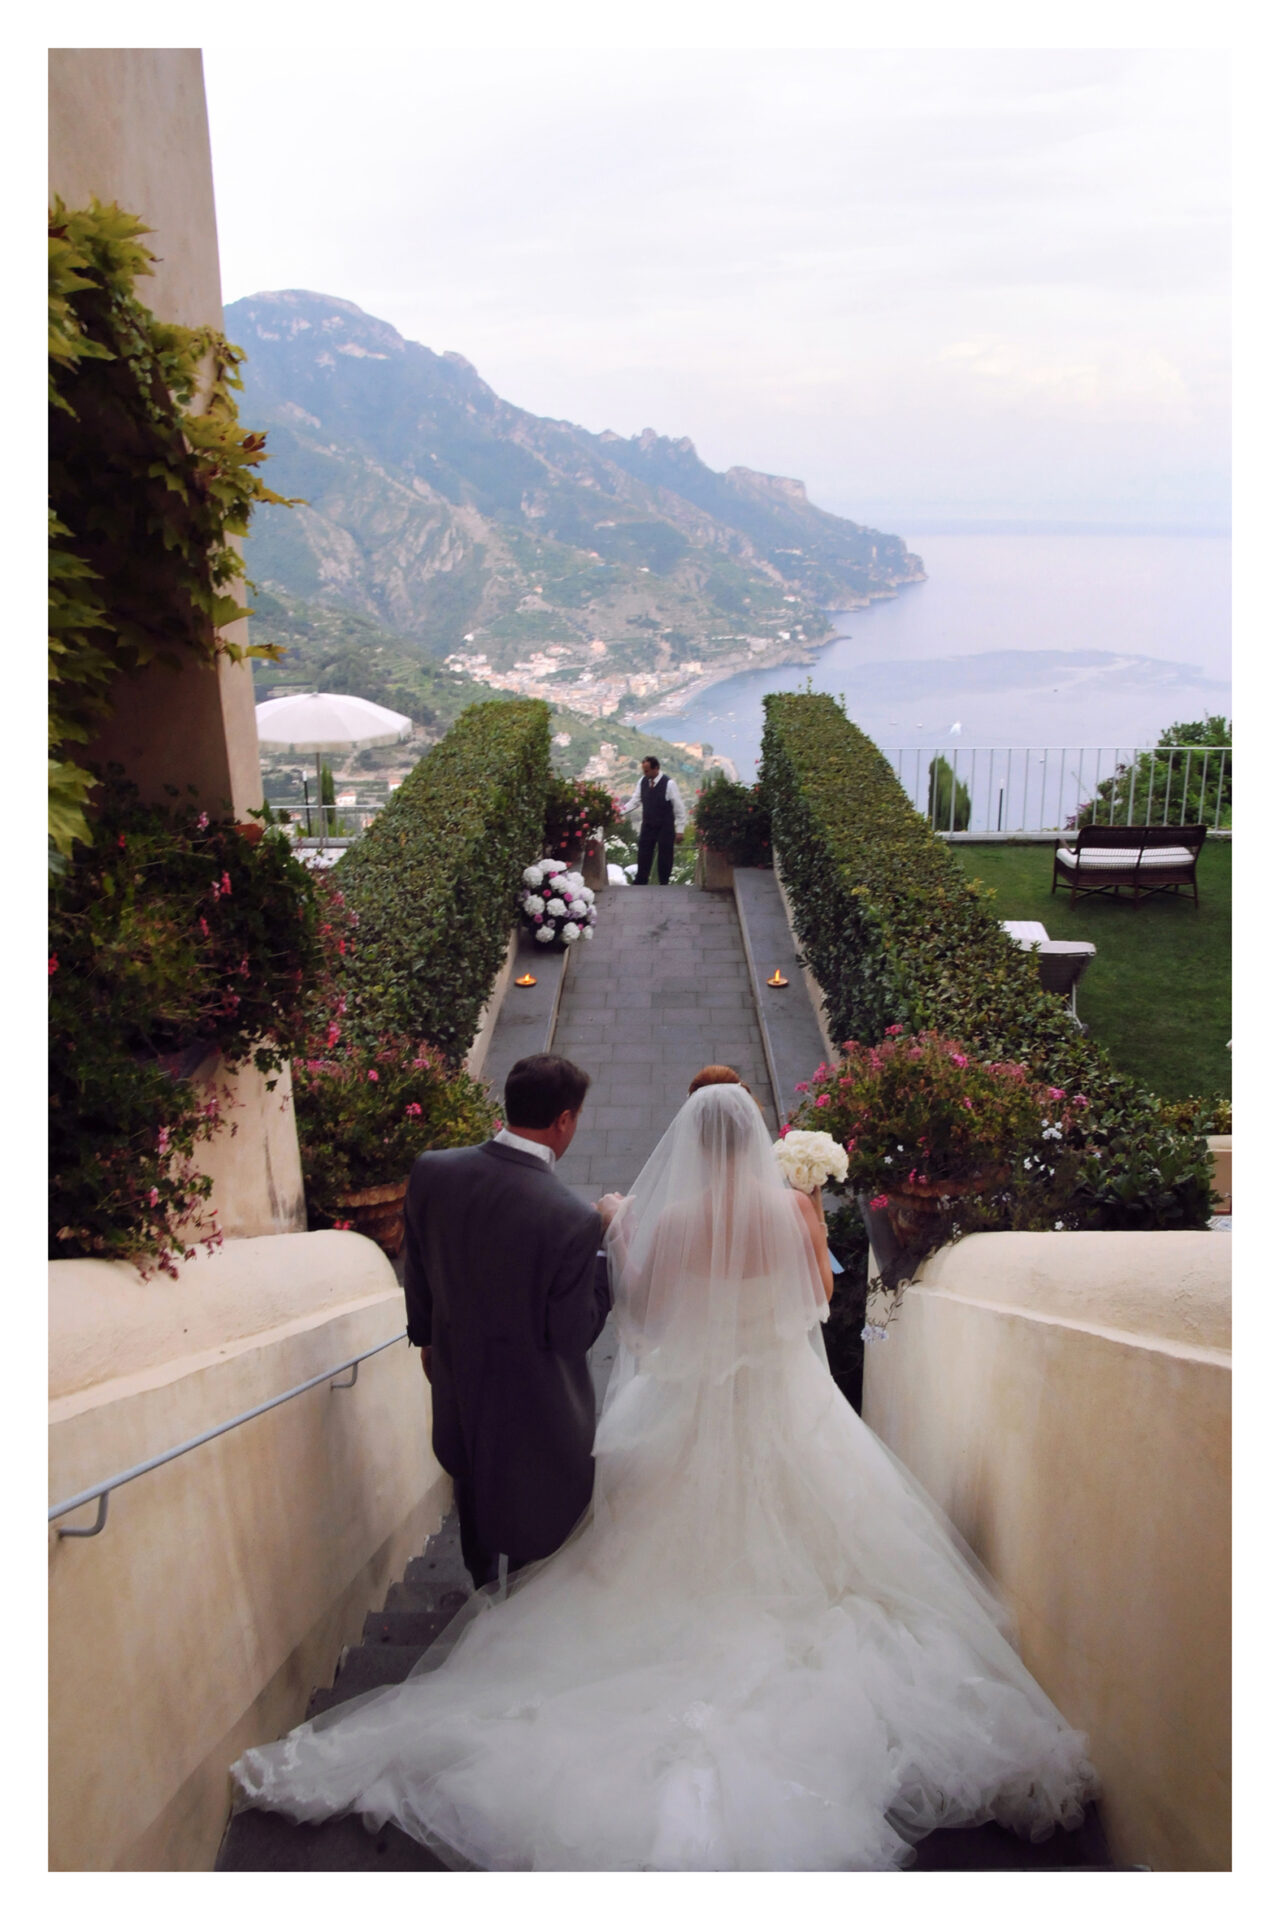 Weddings in Hotel Caruso